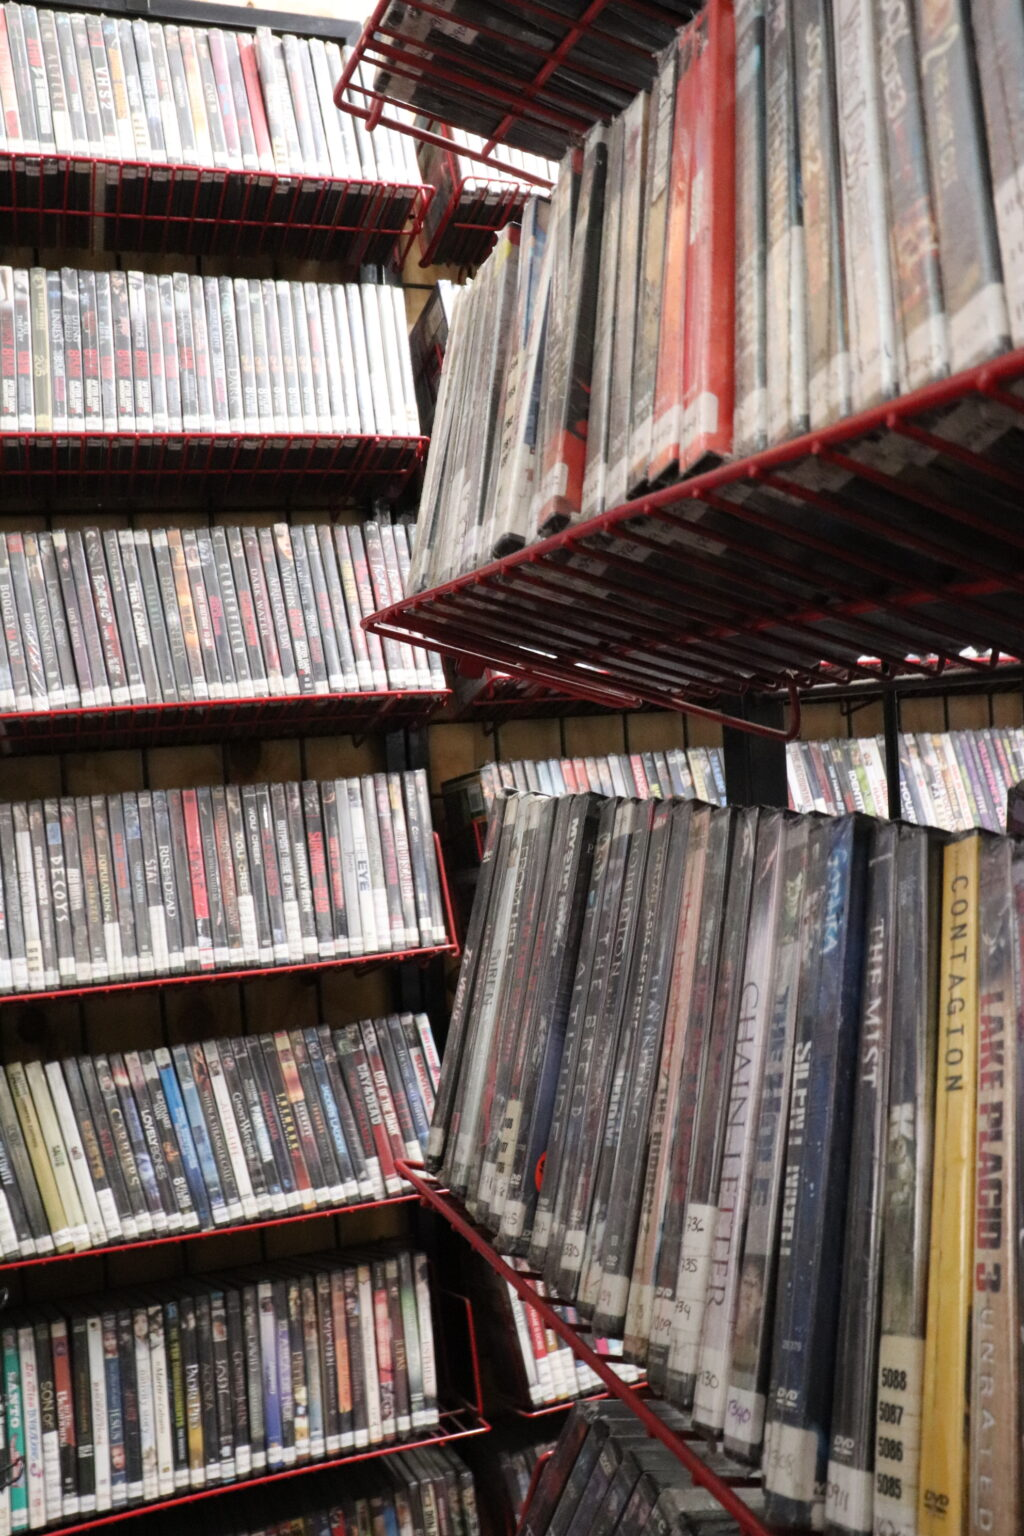 Go Video horror section everything pictured 1024x1536 - The 5 Best Mom-and-Pop Video Stores in Los Angeles